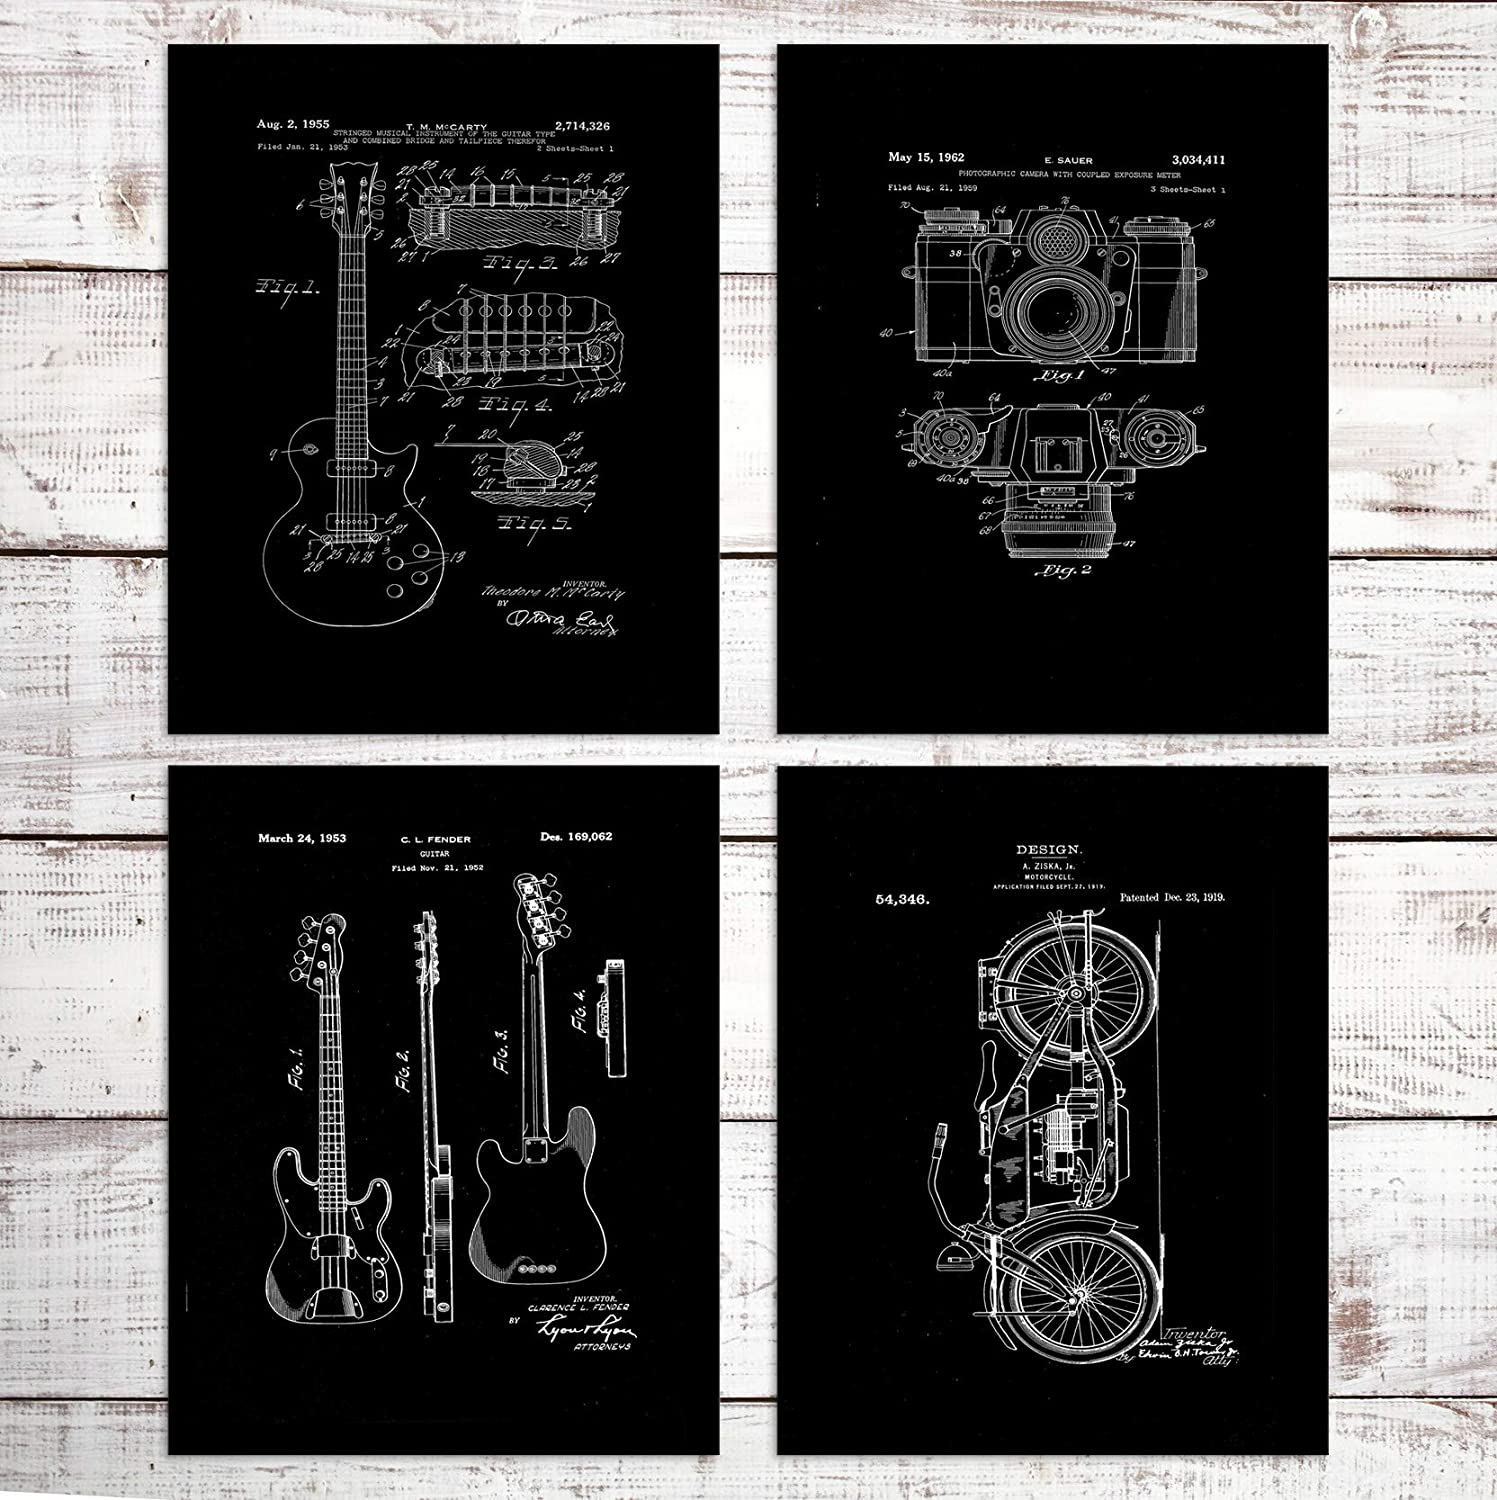 Wall Art For Living Room Vintage Camera Guitar Motorcycle Wall Decor Blueprint Prints Painting Pictures Artwork Office Poster (Set of 4) -Unframed- 8x10in